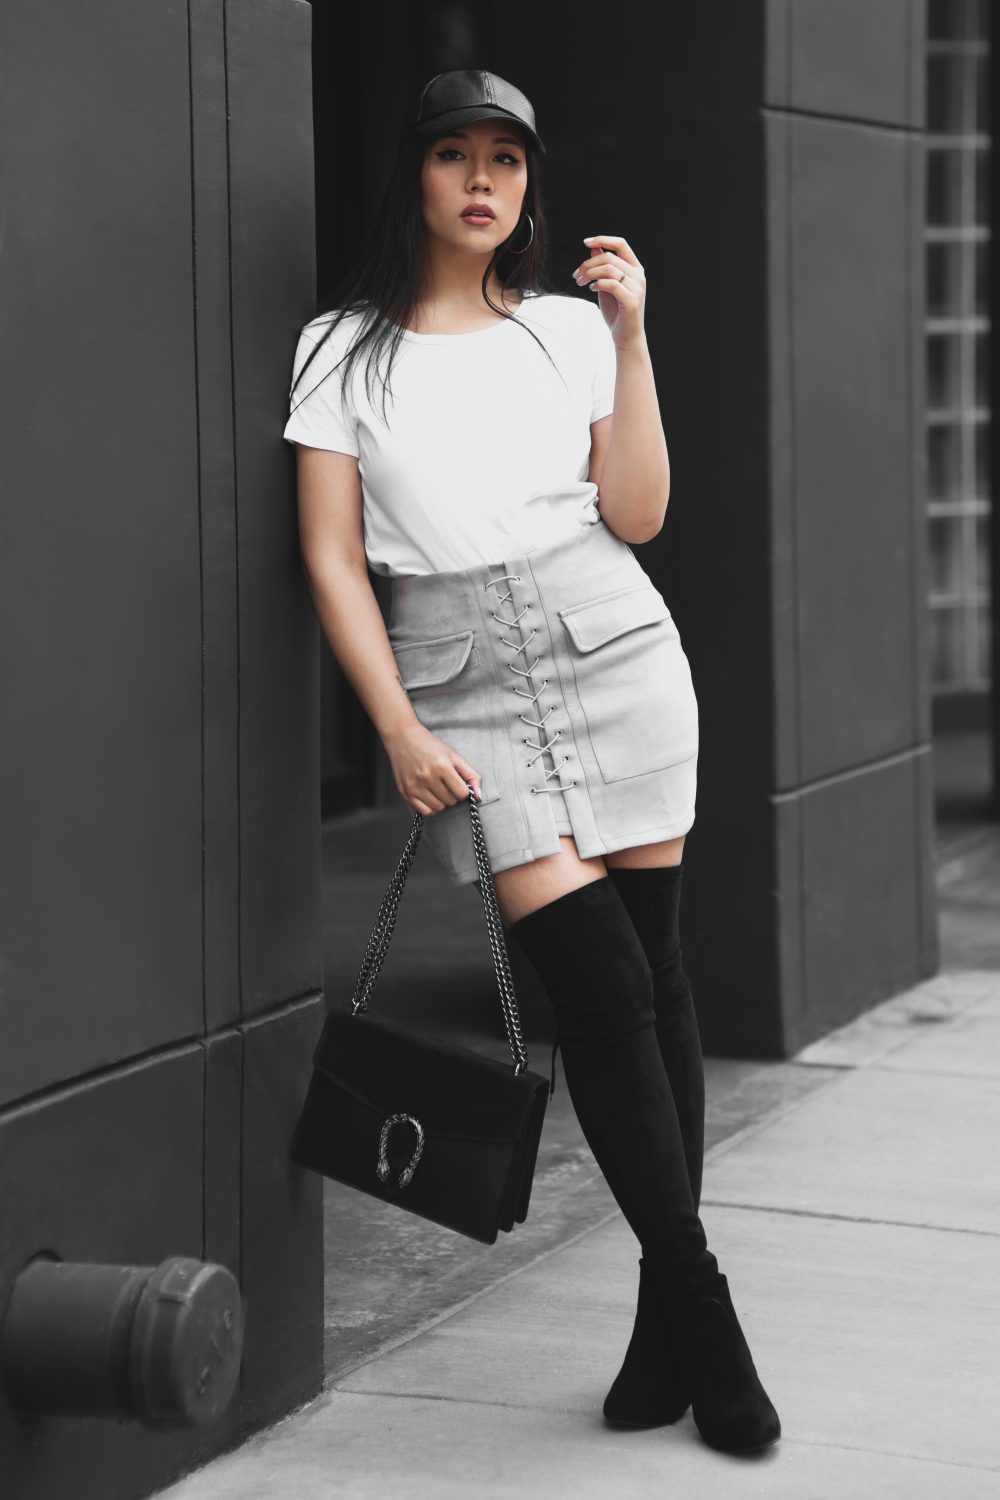 Shop the look- T-shirt: $3.00, Skirt: $11.99, Italian Leather Handbag (dupe for Gucci's $1,350 Dionysus bag): €79.95, Hat: $10.99, Over-the-Knee Boots (Dupe for Stuart Weitzman's $798 Highland boot): $99 - www.theballeronabudget.com